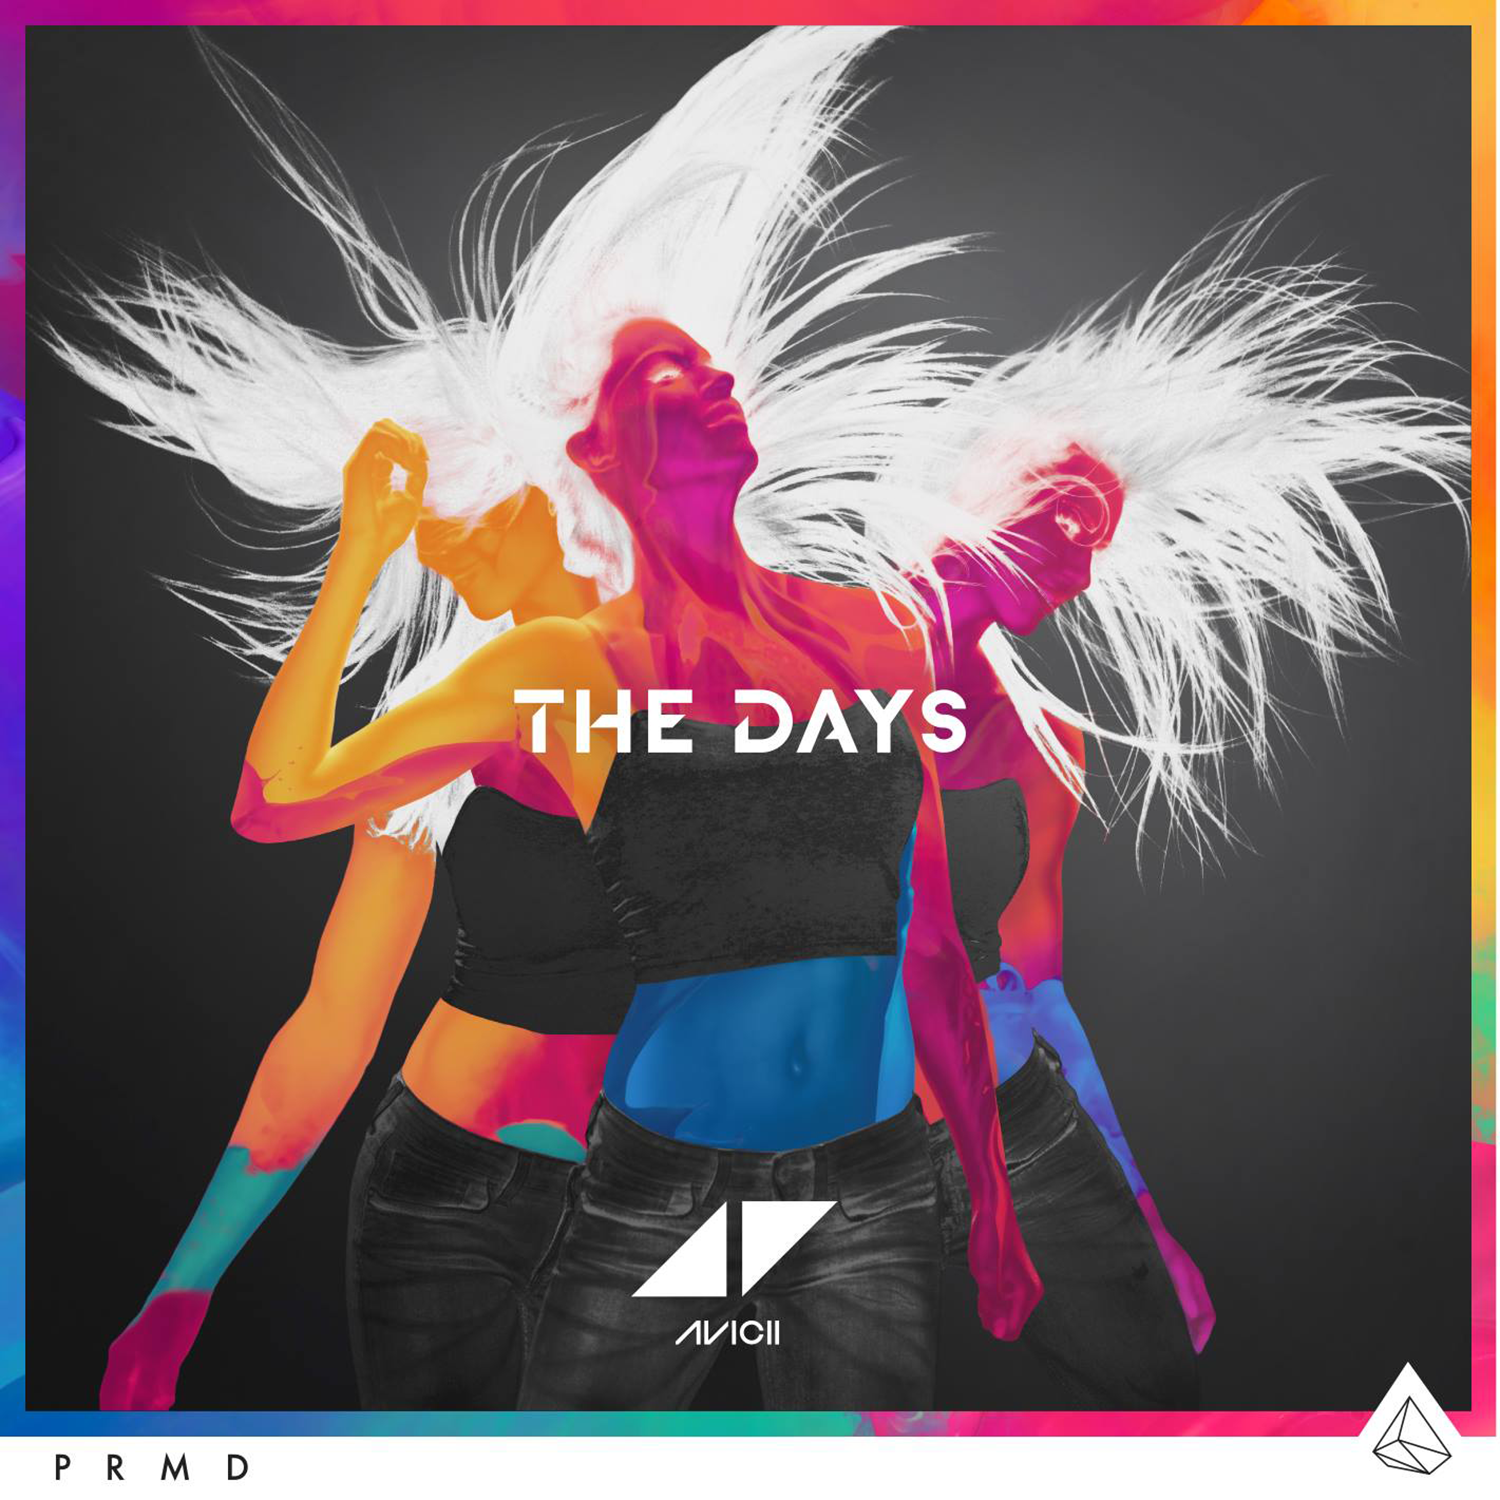 avicii the days bergs remix